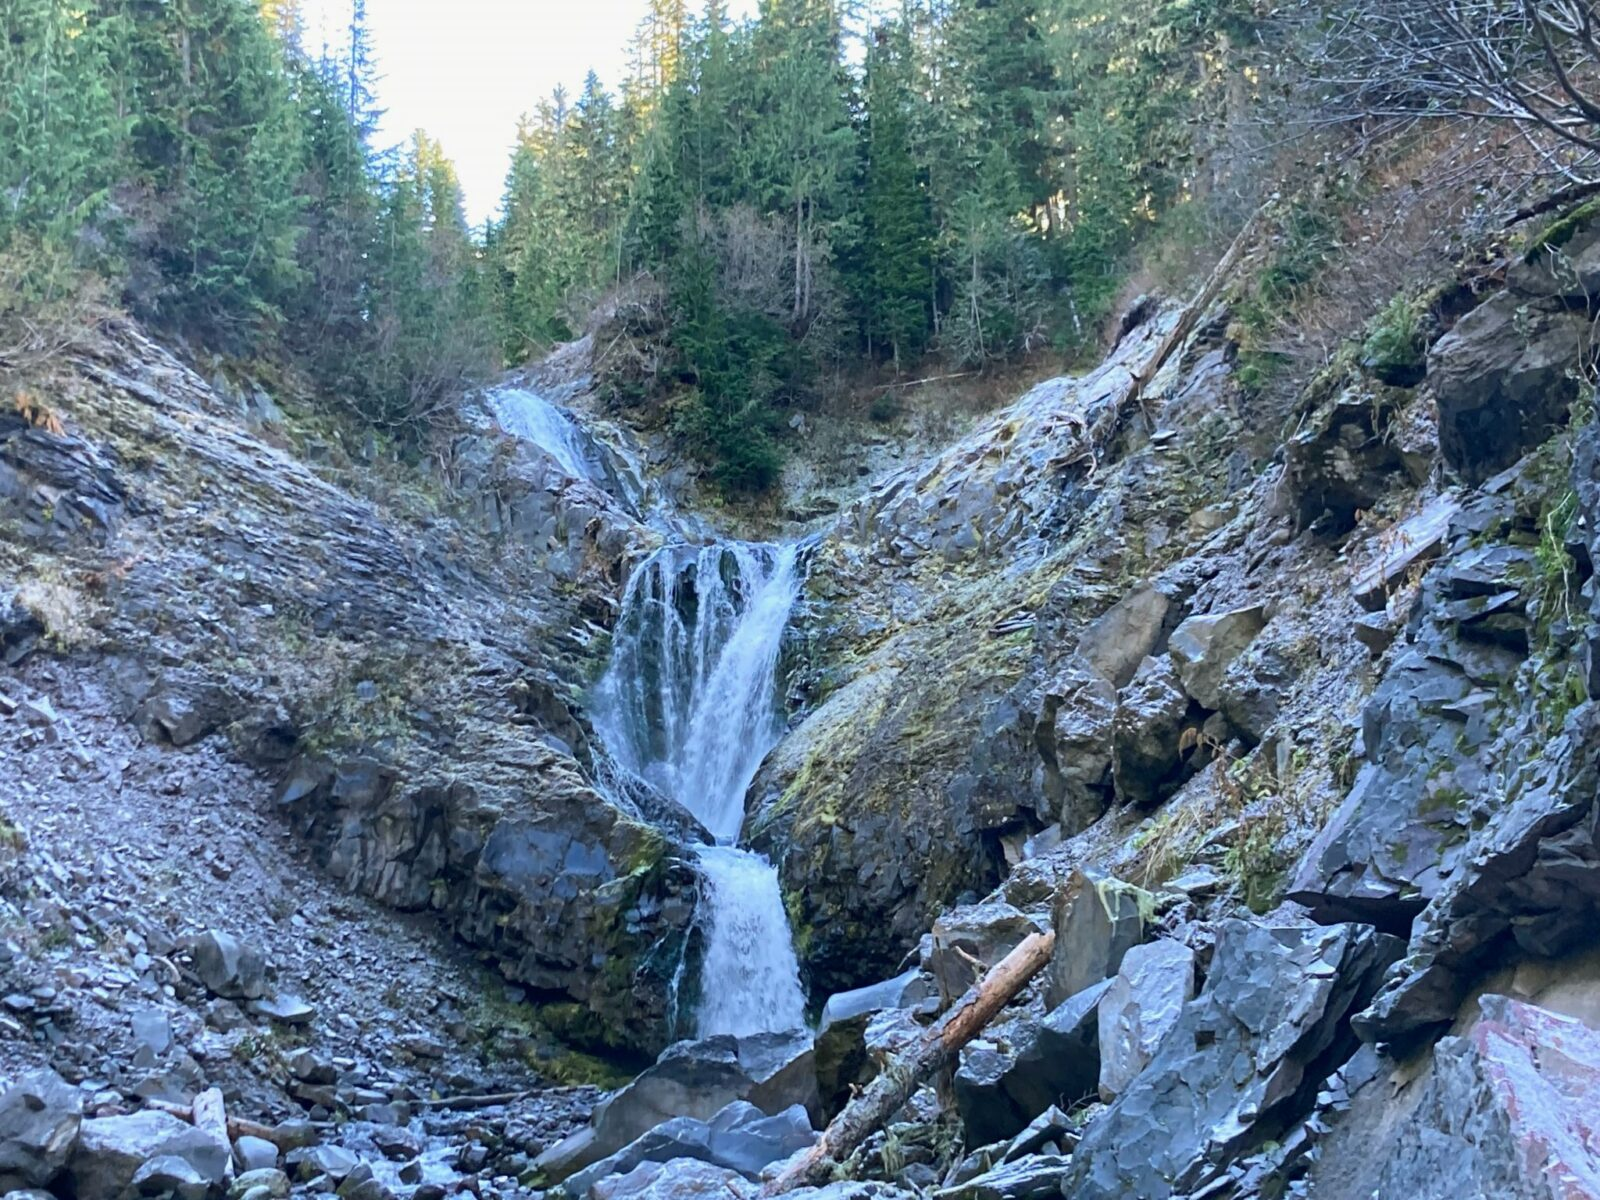 A waterfall tumbling between rocks in a ravine in the forest on the Comet Falls trail in Mt Rainier National park